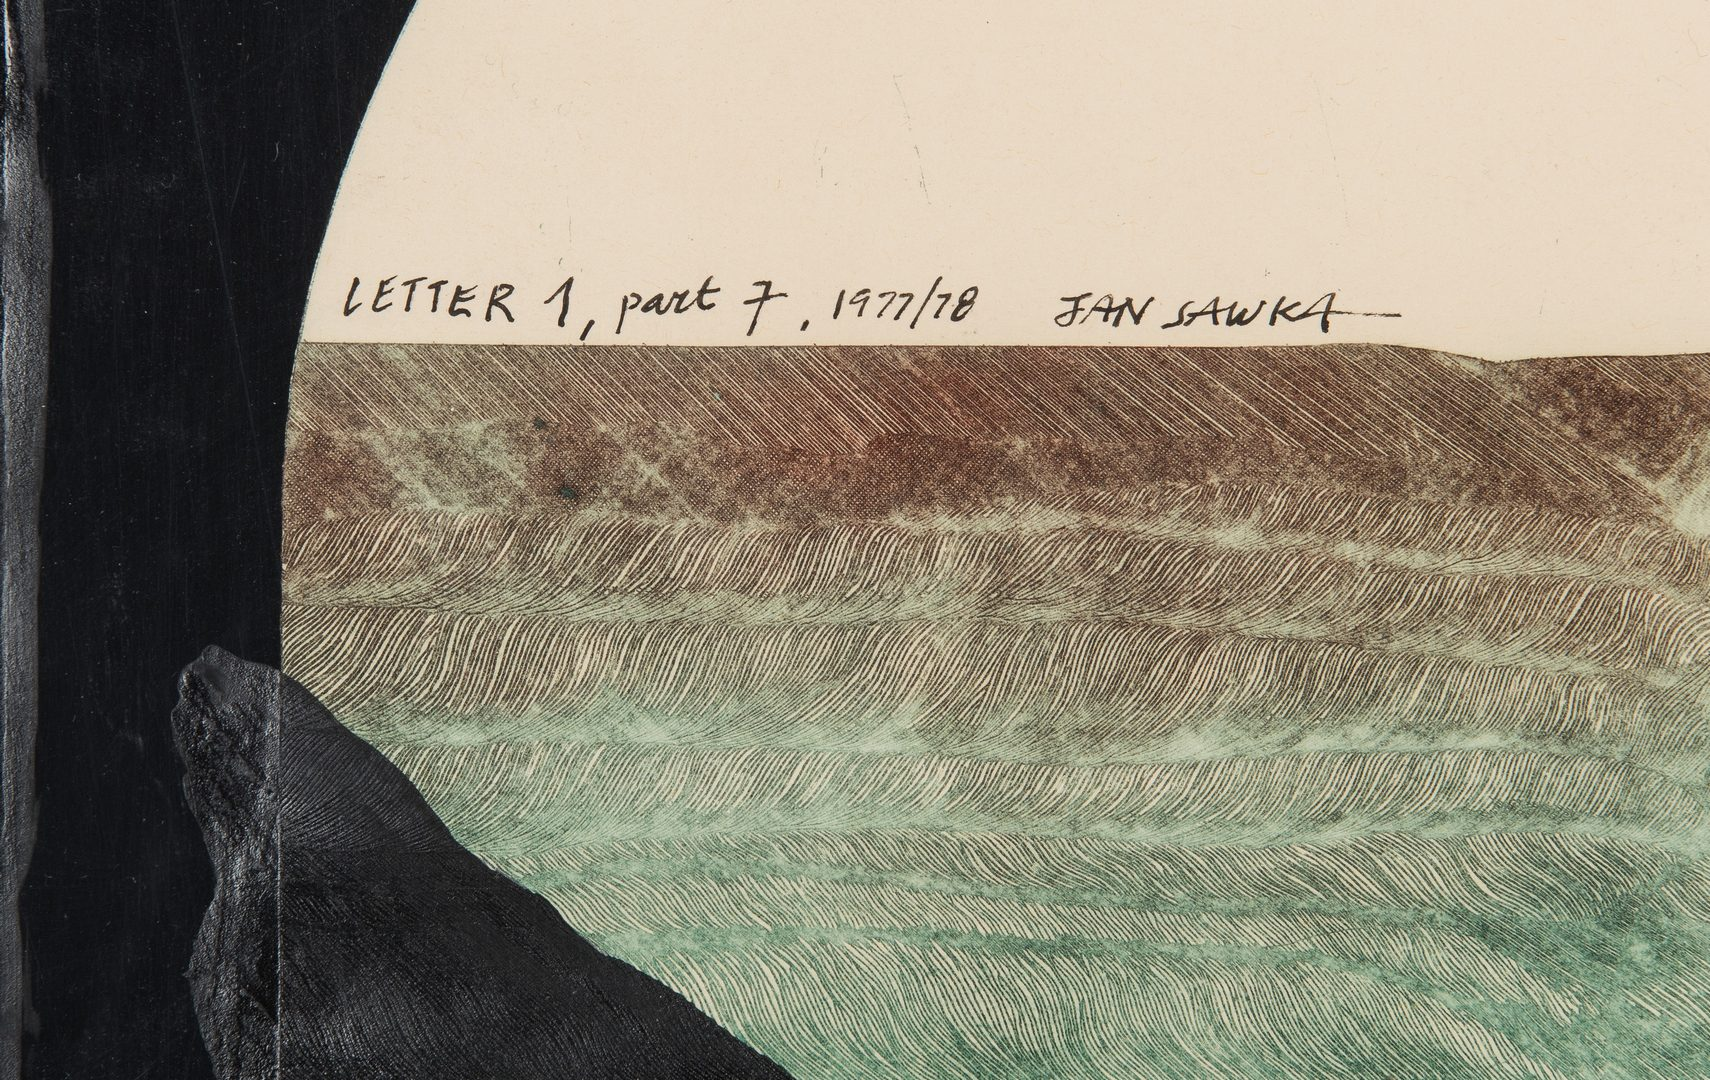 Lot 234: Jan Sawka Seven Part Mixed-Media Series, Letter 1